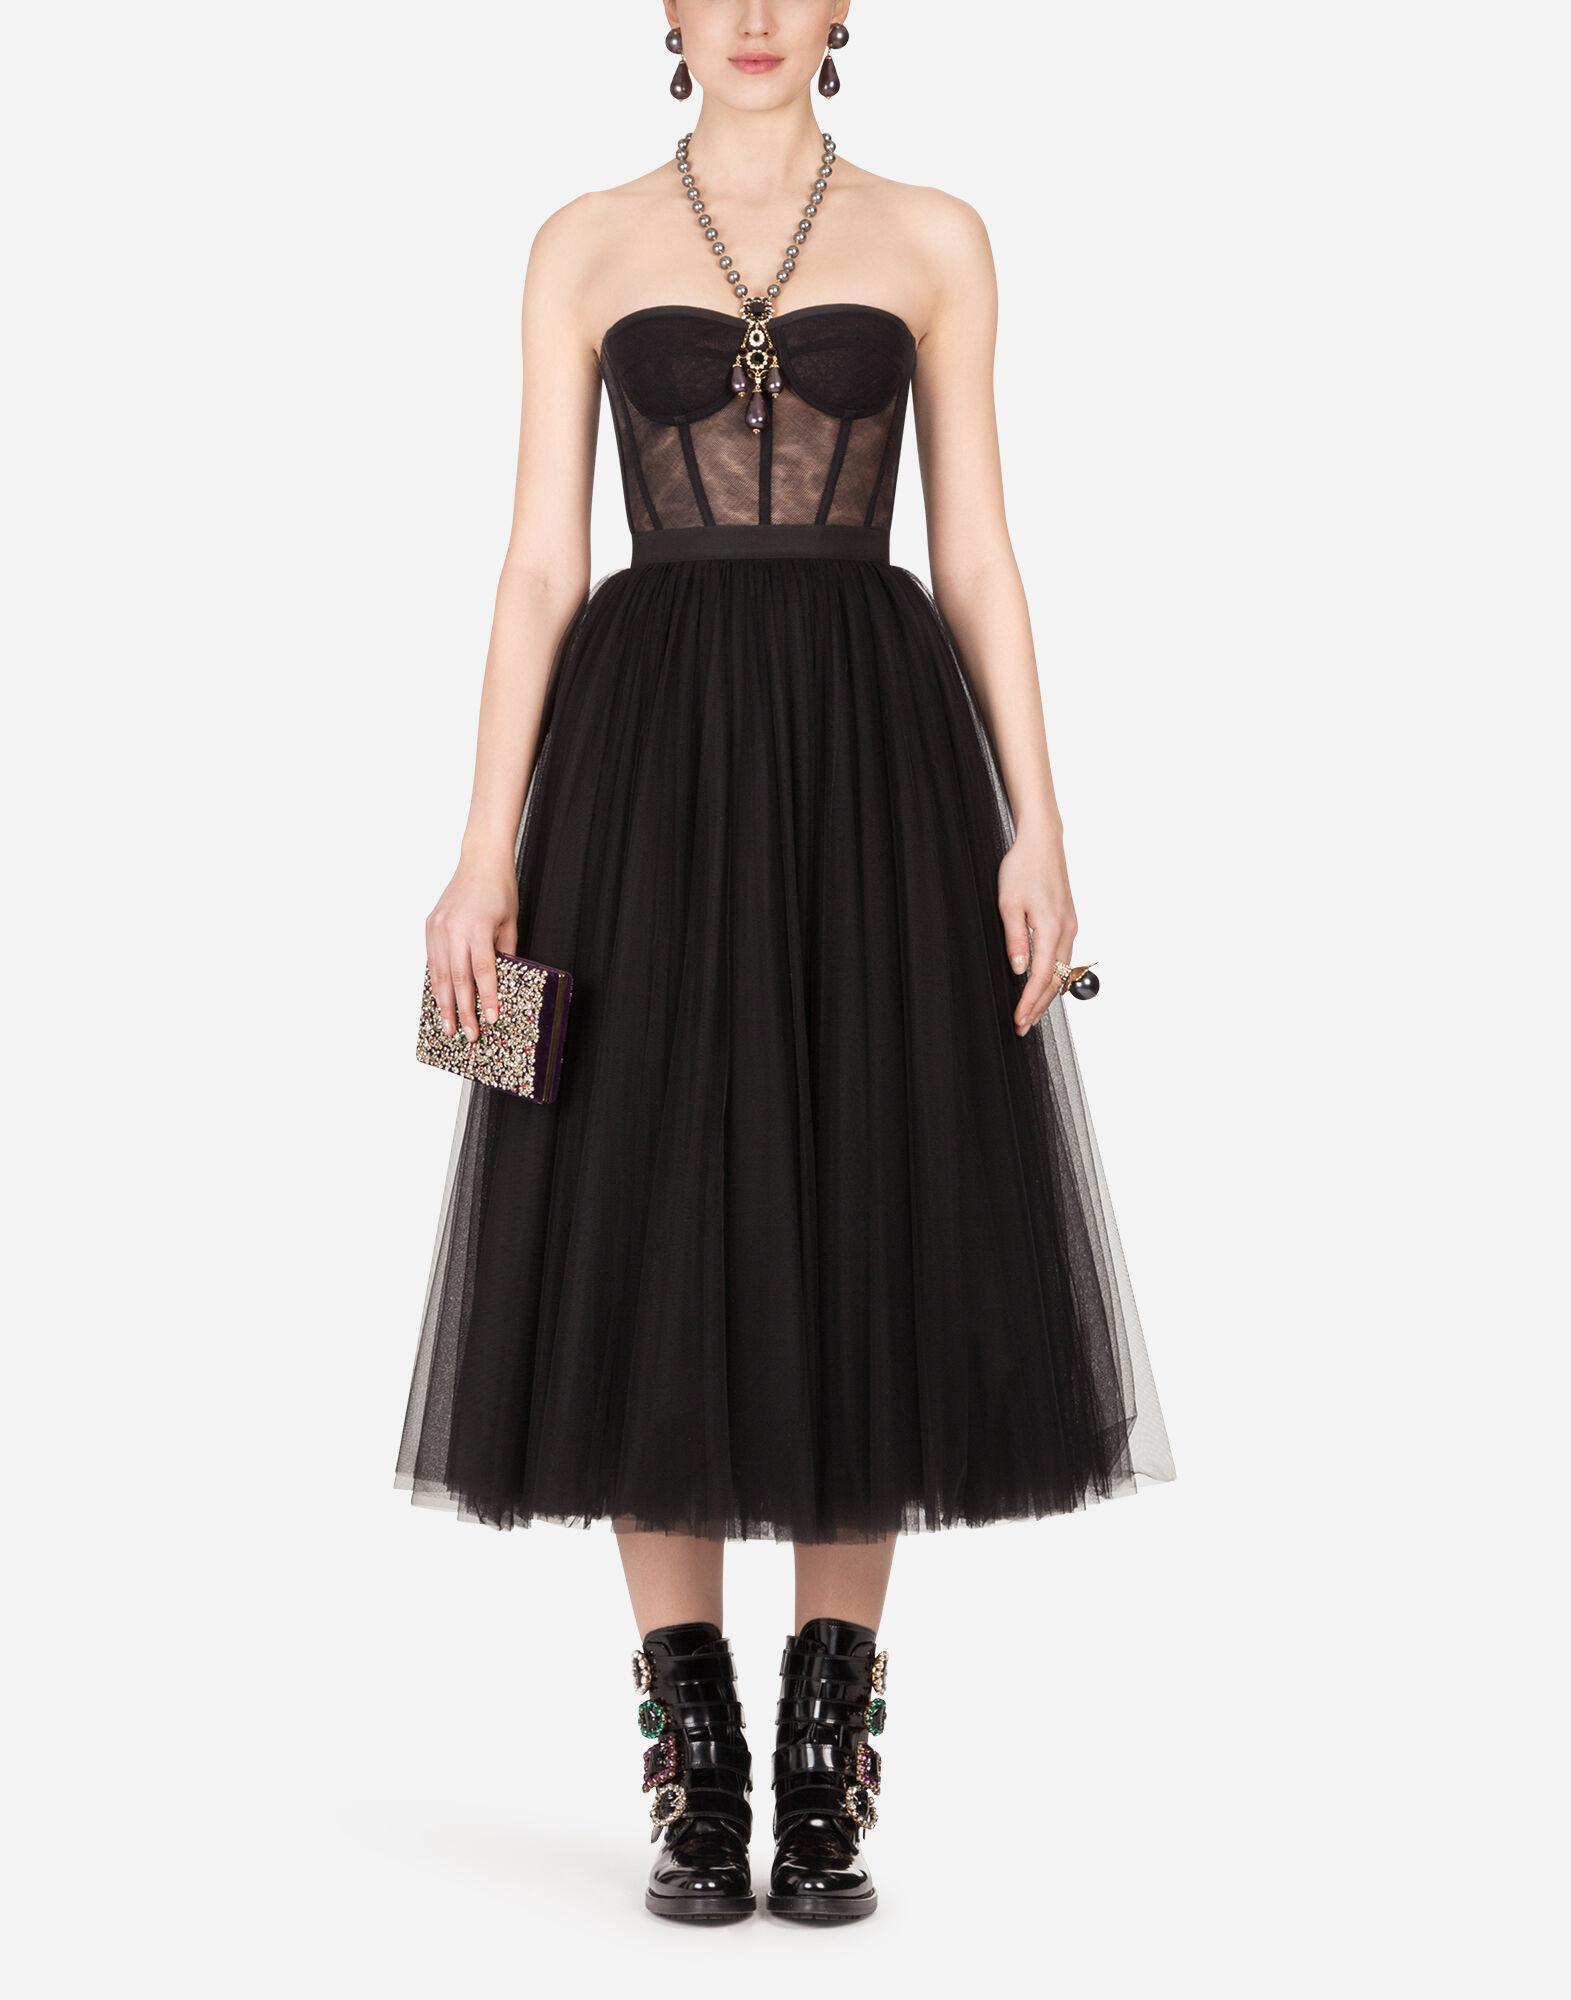 Cotton tulle bustier top 3